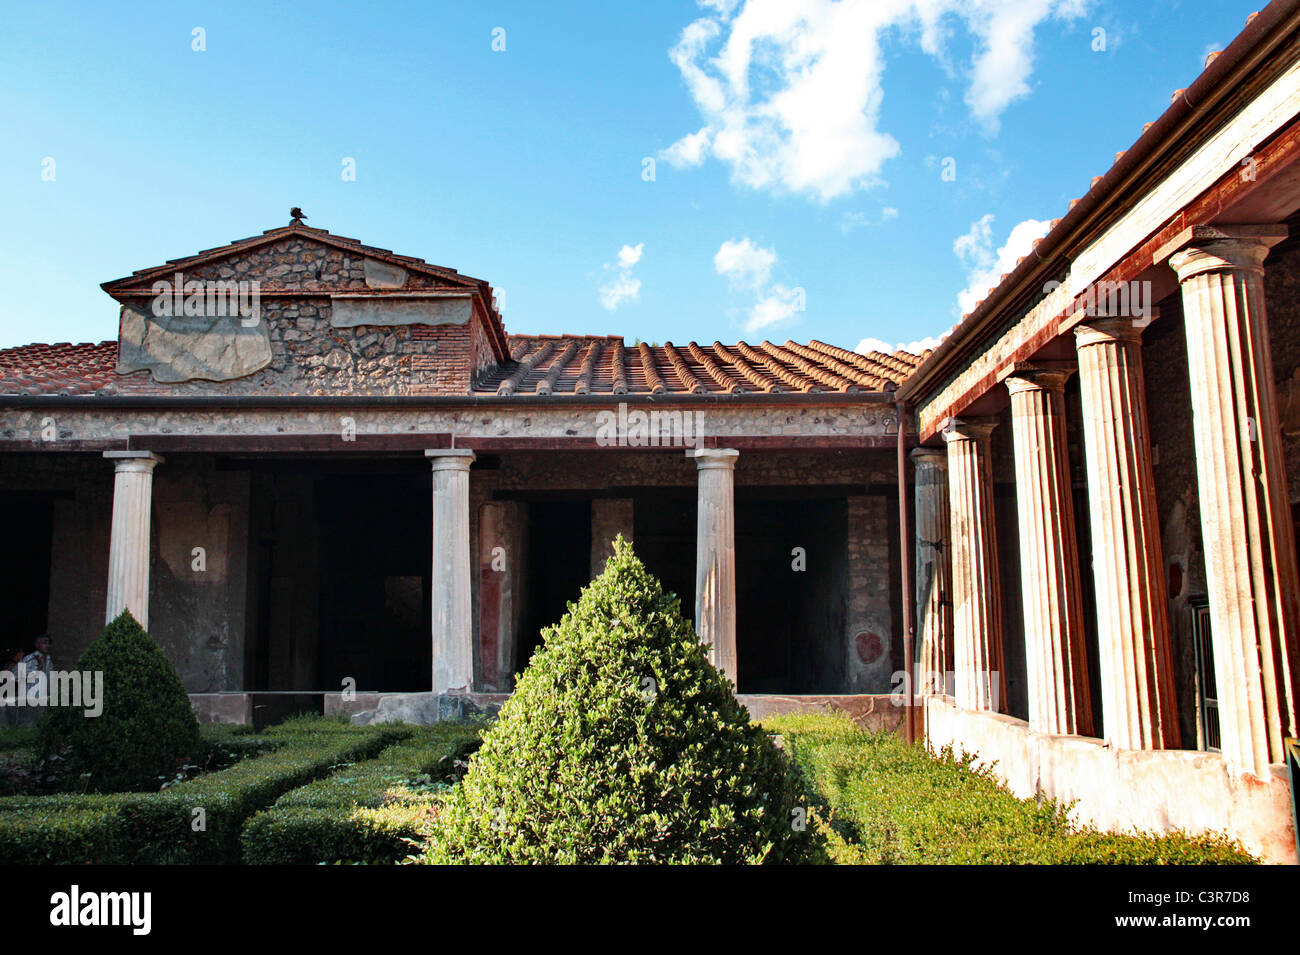 Interior Court Of An Ancient Roman House In Pompei Stock